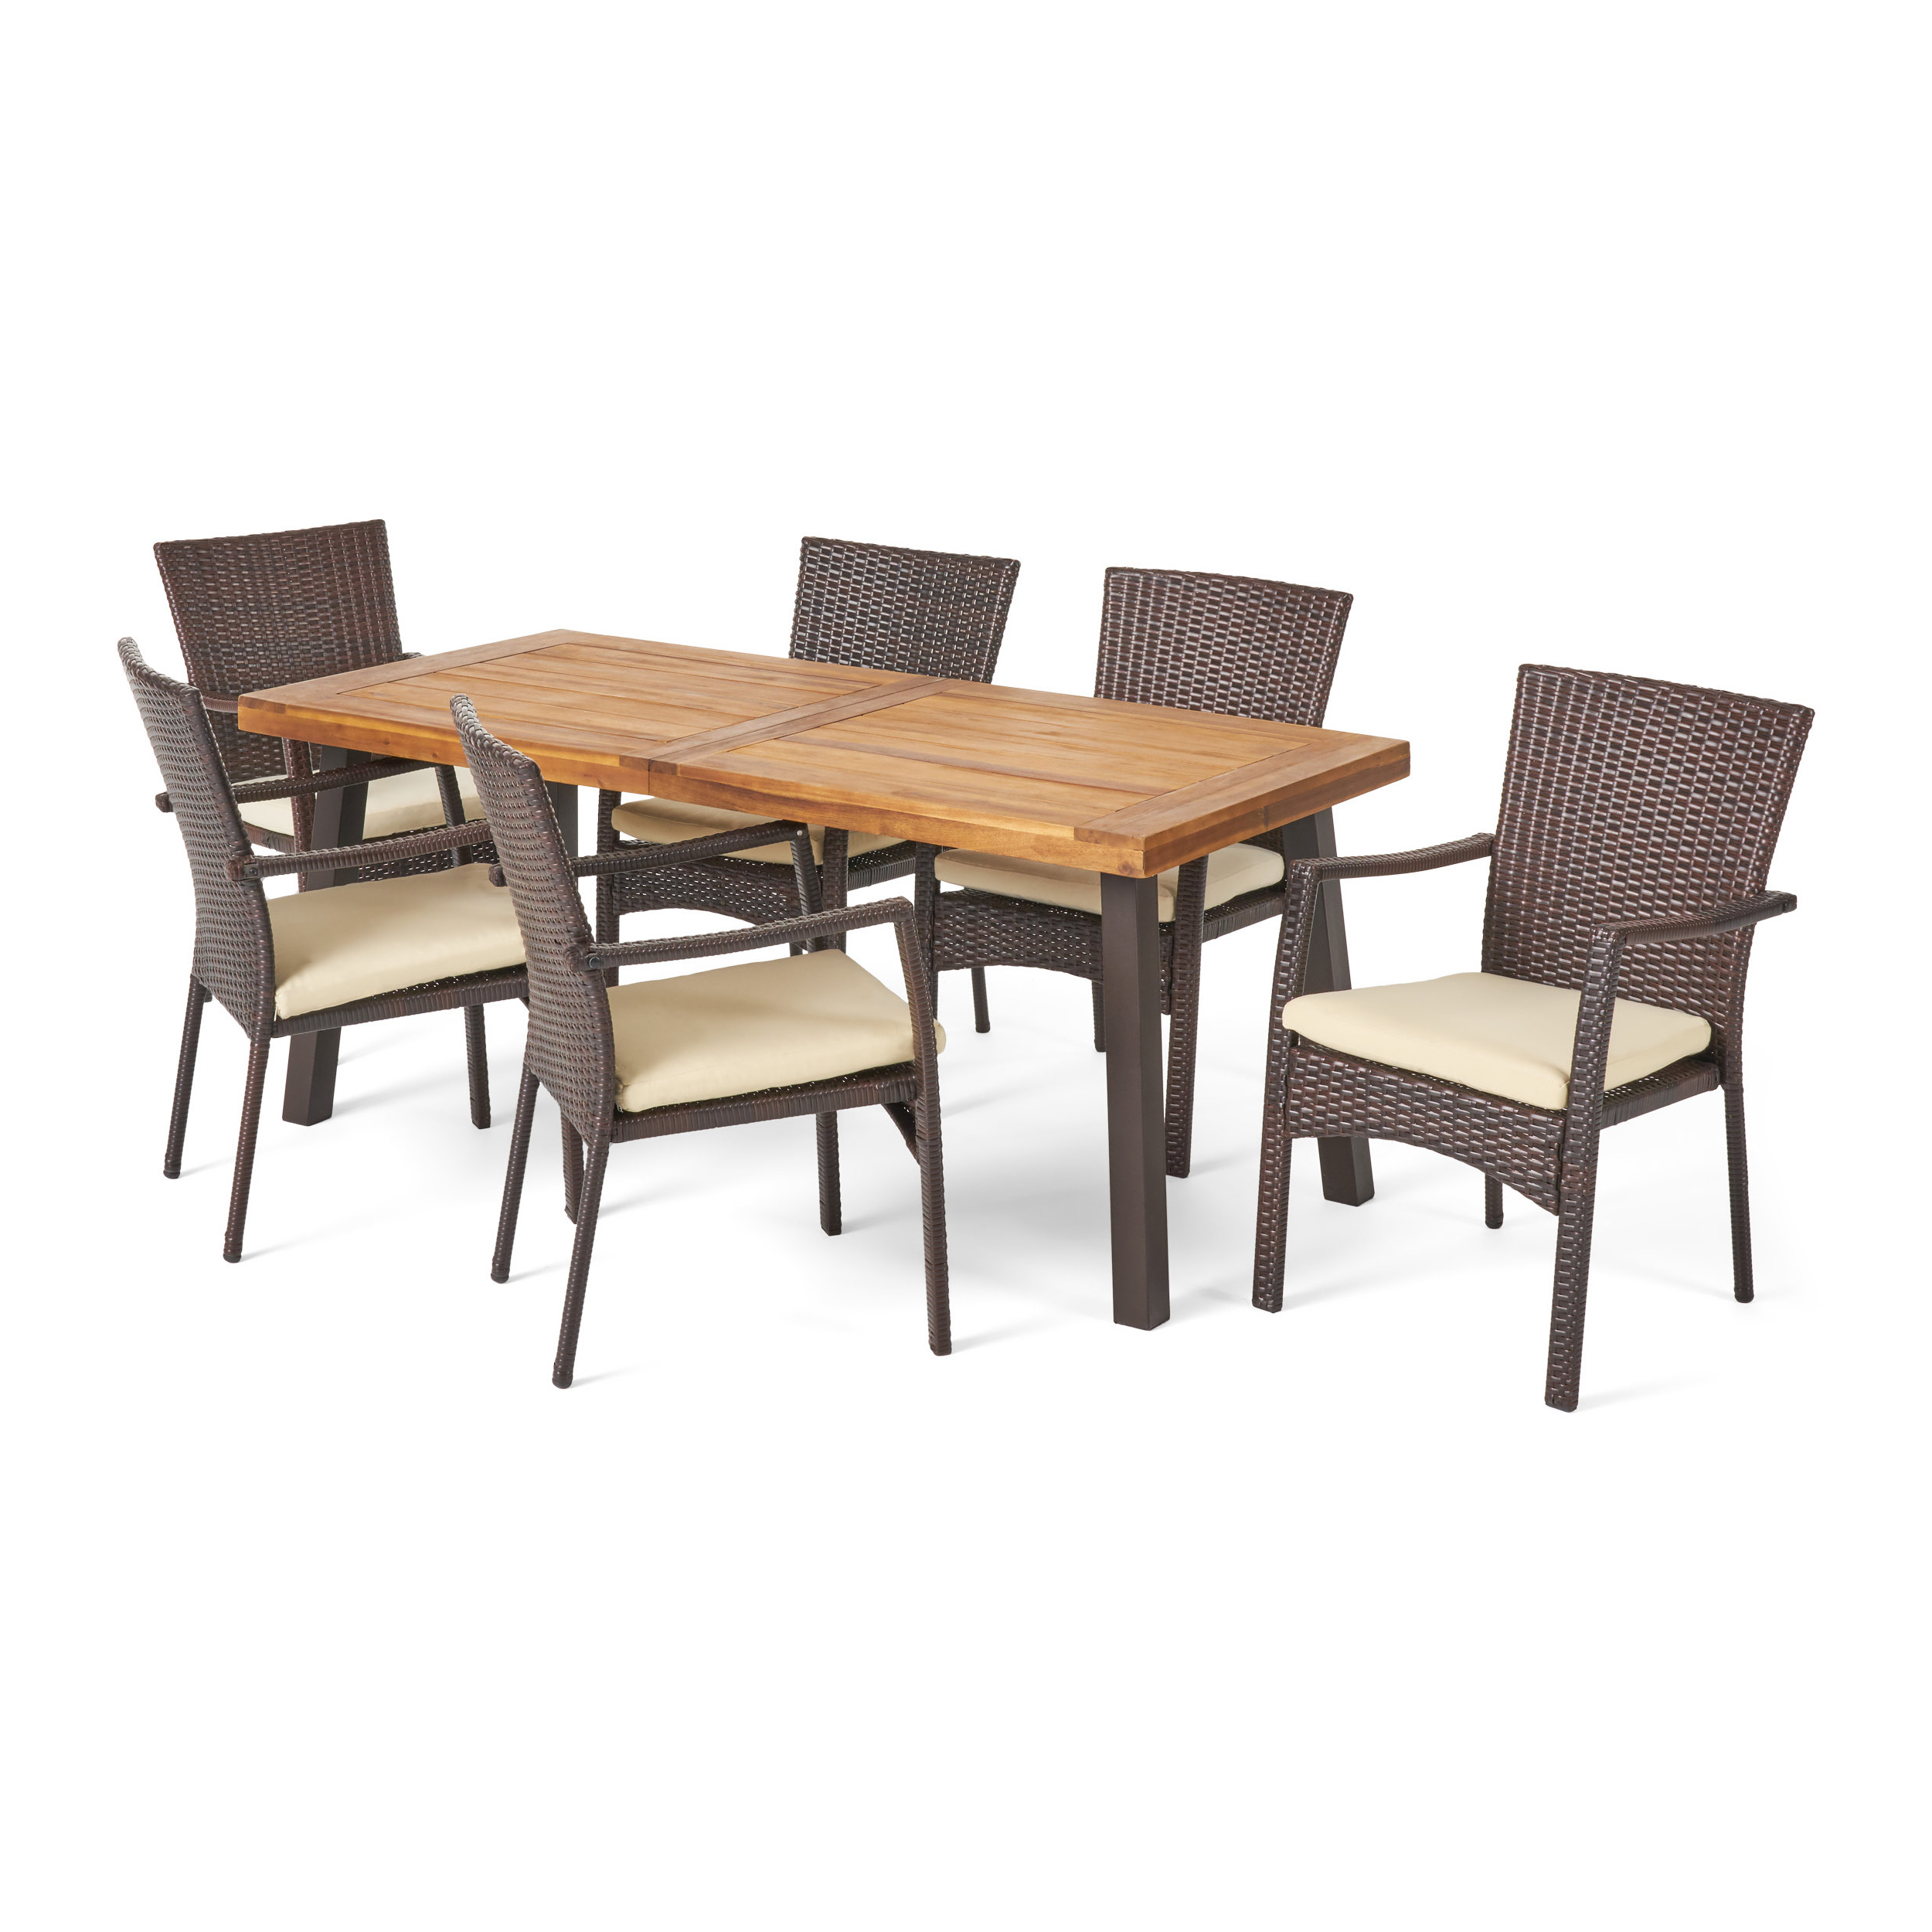 2017 Kaya 3 Piece Dining Sets Intended For Kissena 7 Piece Teak Dining Set (View 1 of 20)